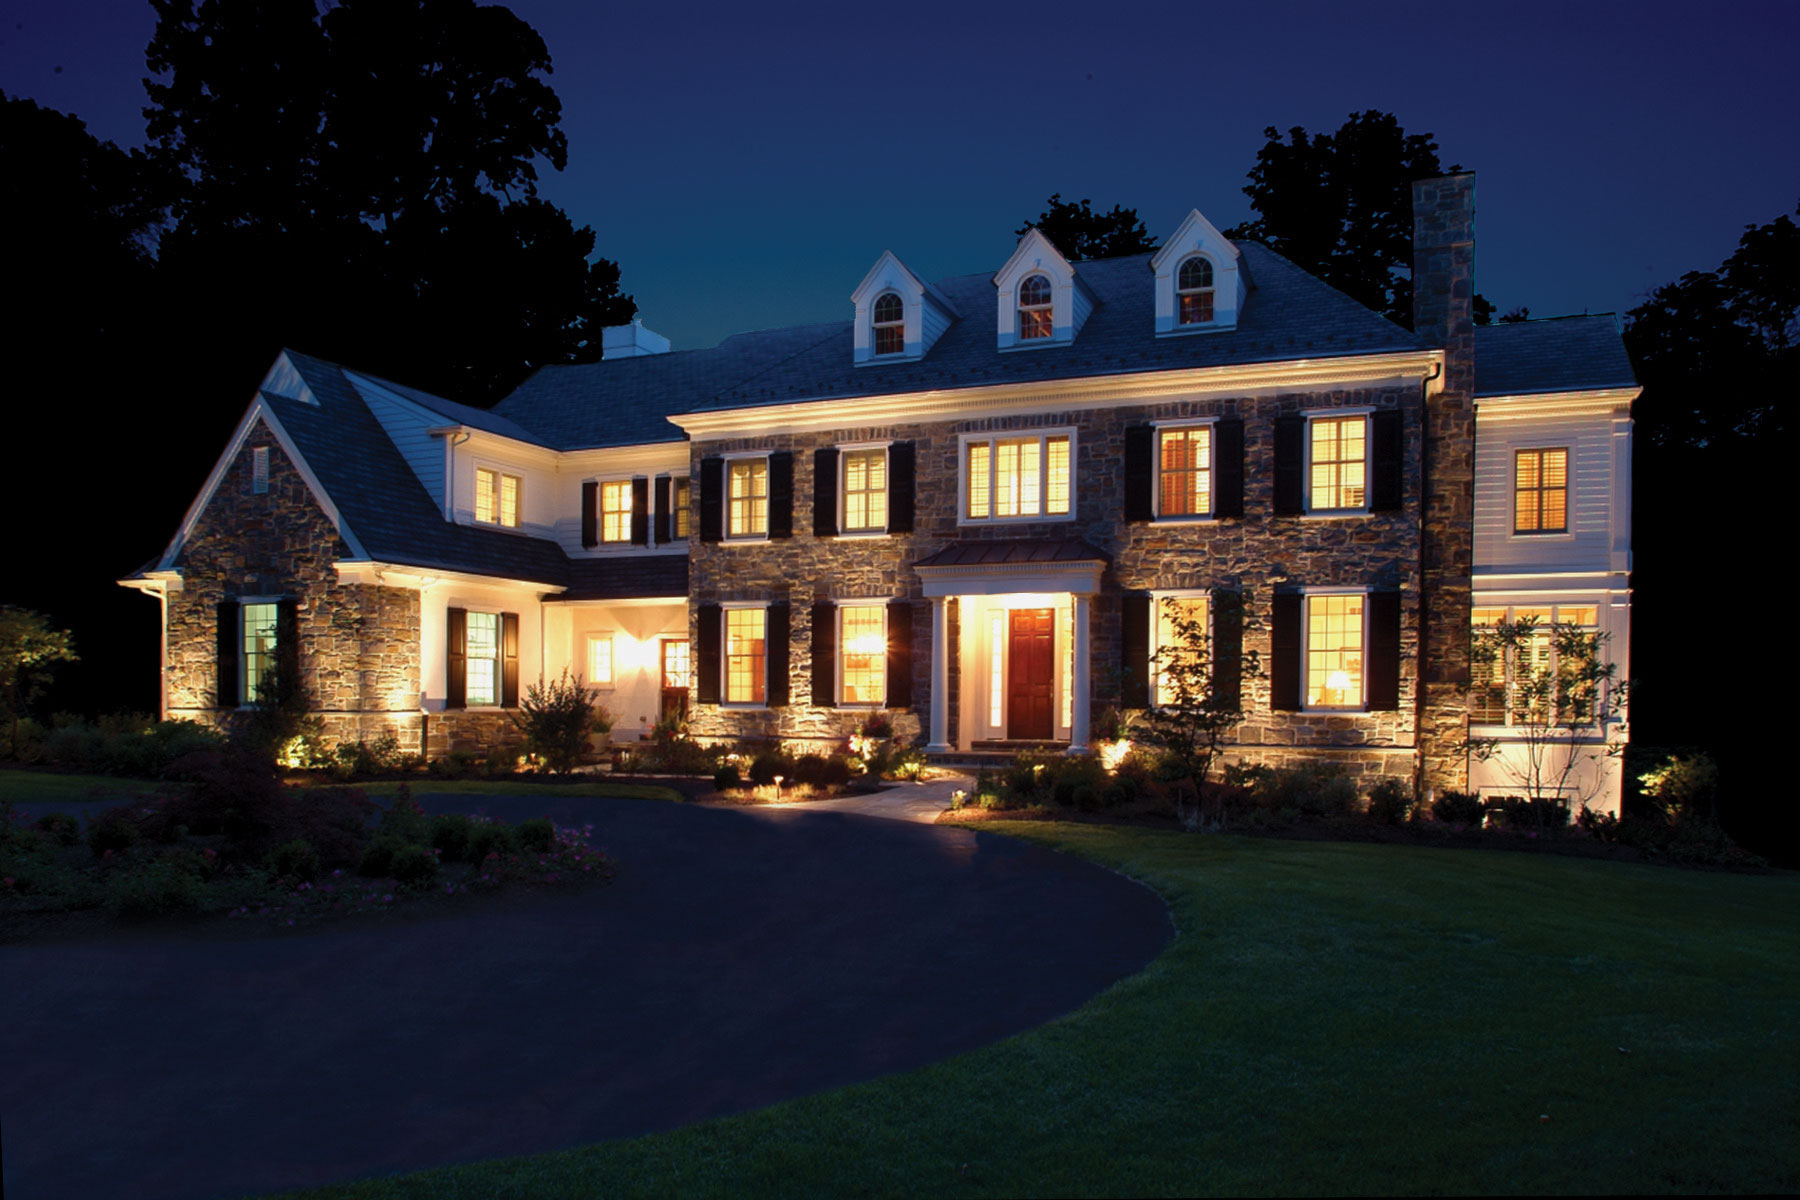 Led Outdoor Lighting Systems Upgrade your asheville outdoor lighting system to eco friendly led did you know asheville led outdoor lighting looks as good or better than low voltage halogen or even line voltage lighting say goodbye to higher outdoor workwithnaturefo